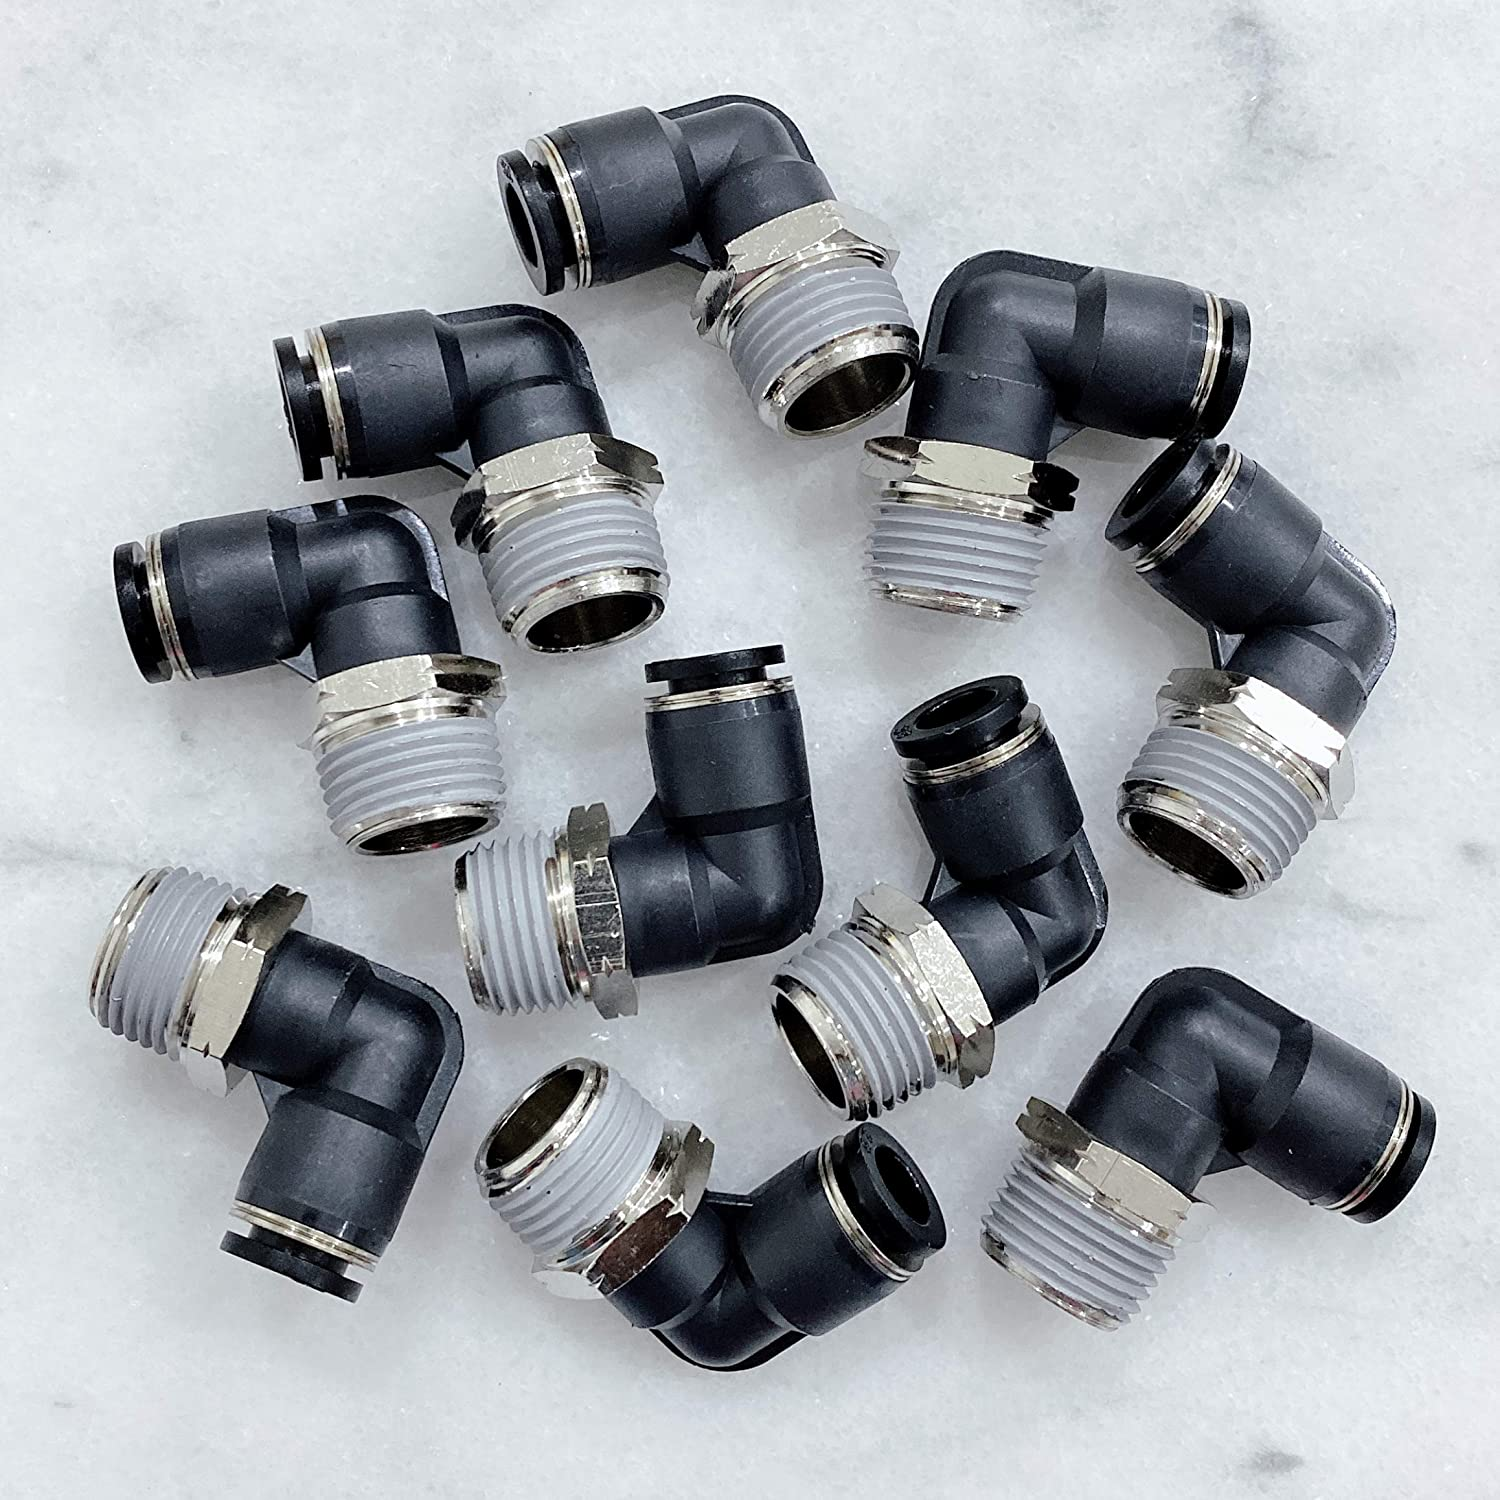 MacCan Pneumatic PL1//4-N2 Male Elbow 1//4 Tube OD x 1//4 NPT Thread Air Push to Connect Fittings Pack of 10